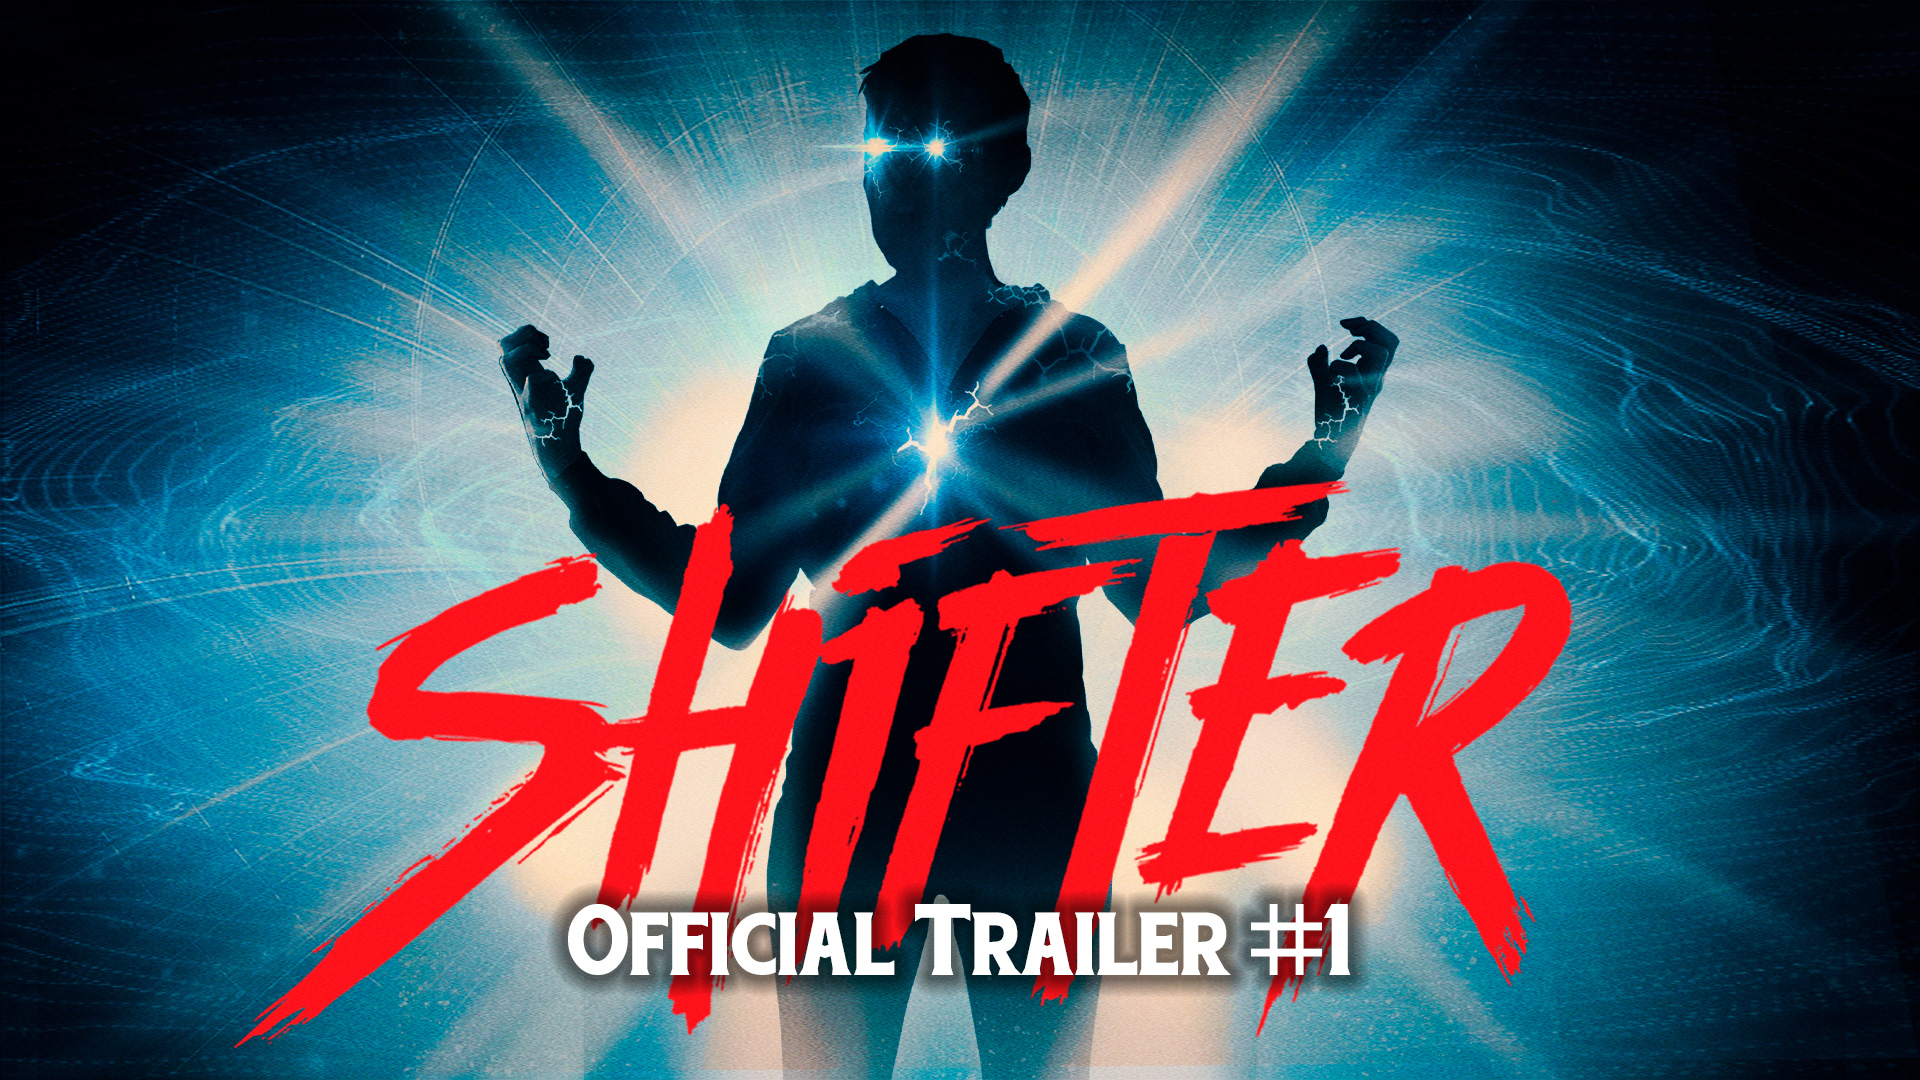 Shifter Official Trailer #1